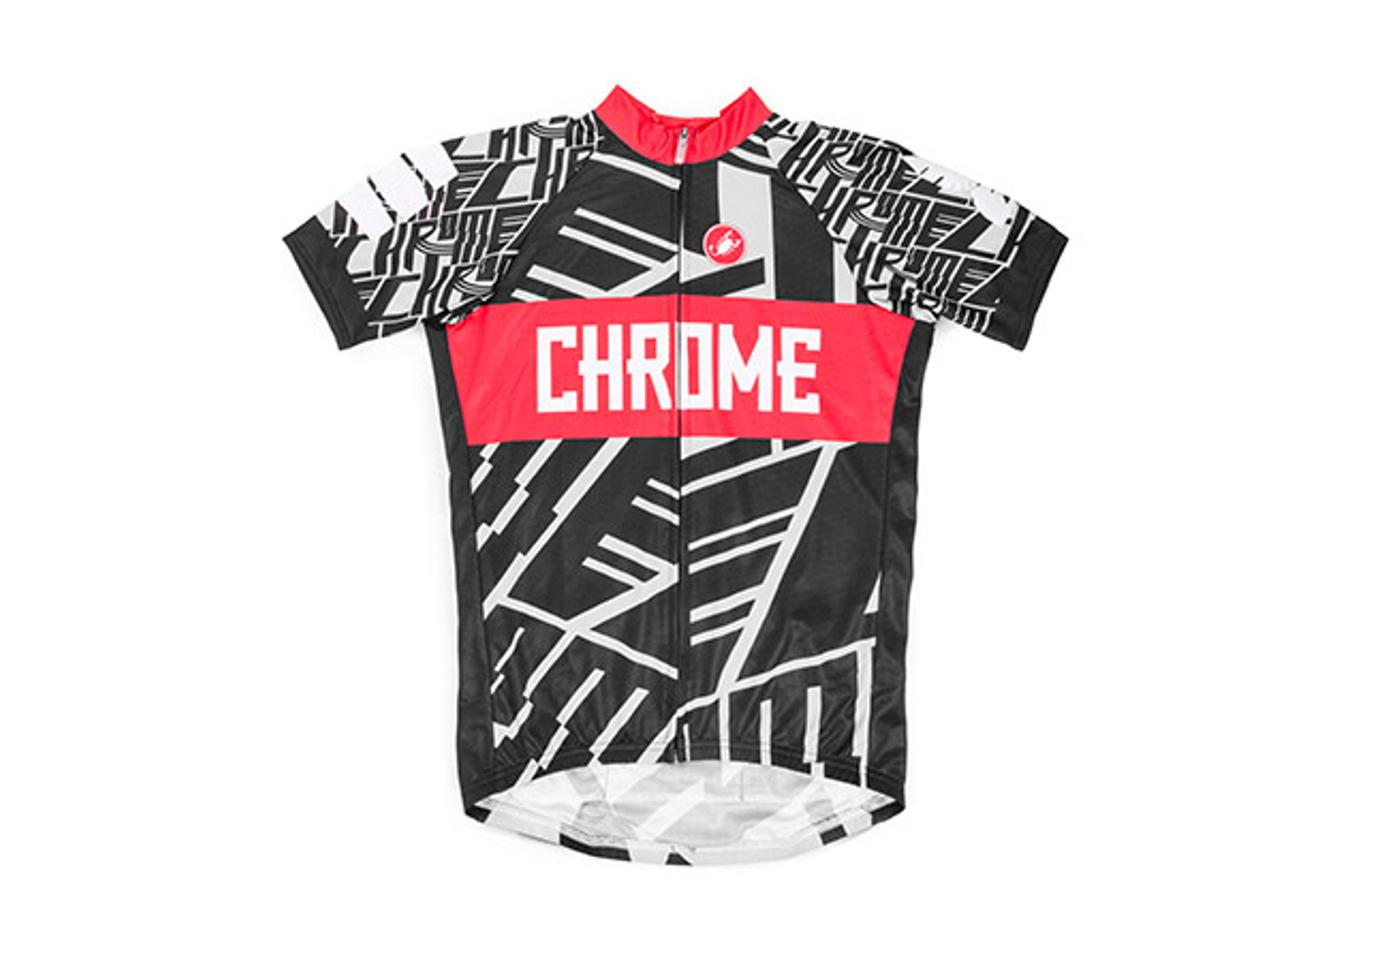 Chrome's Coveted Jersey Designed by Death Spray Custom